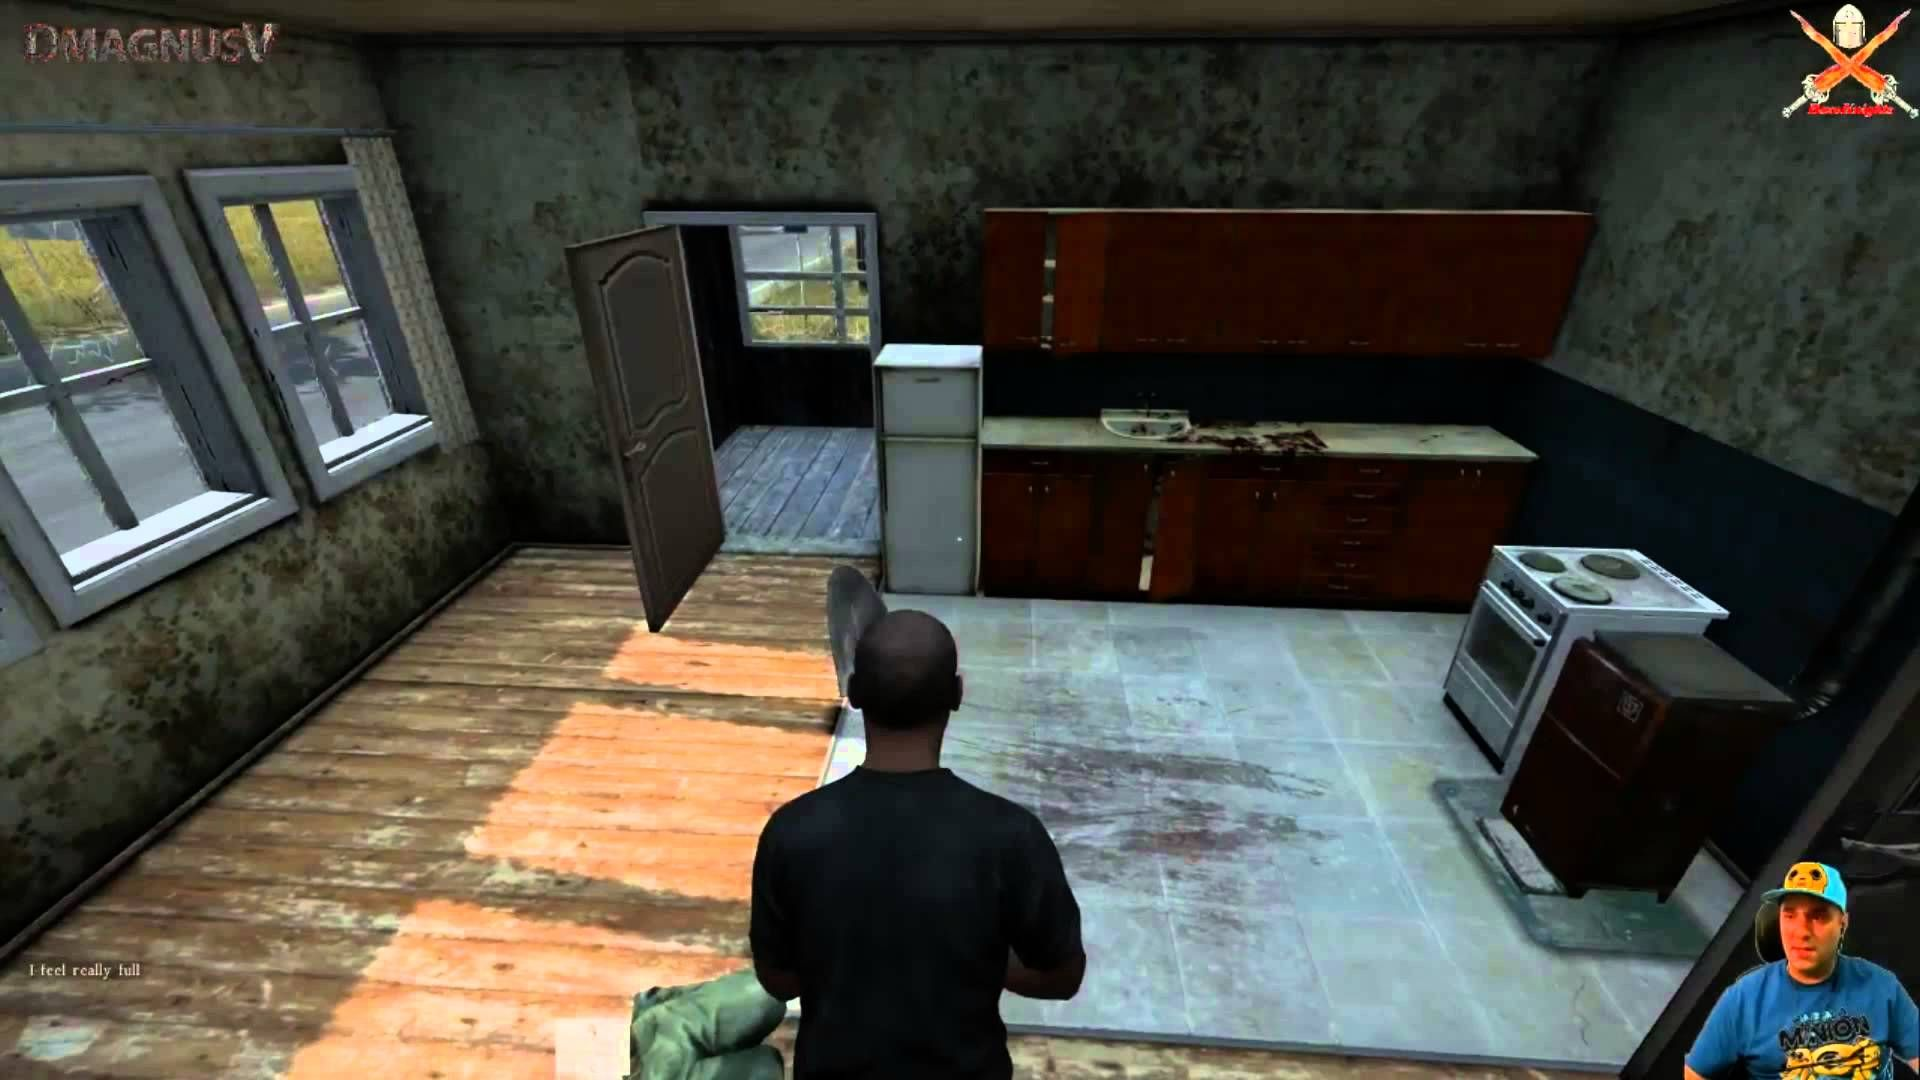 Dayz standalone glitching zombie had a full belly with